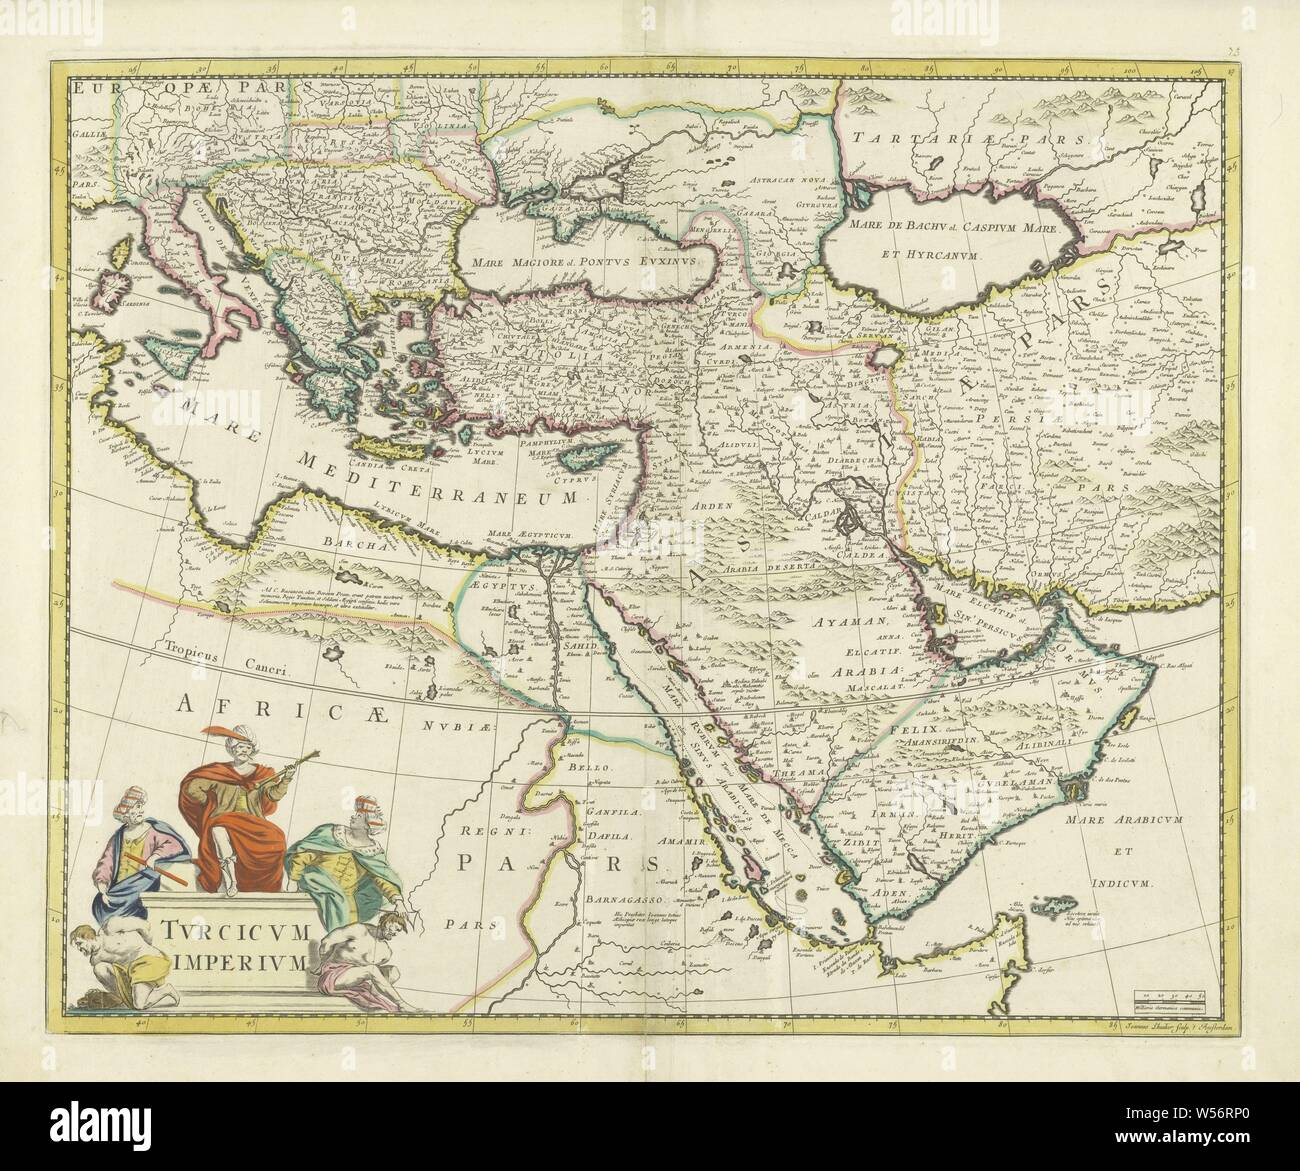 Map of the Turkish Empire, Tvrcicvm imperivm (title on object), Map